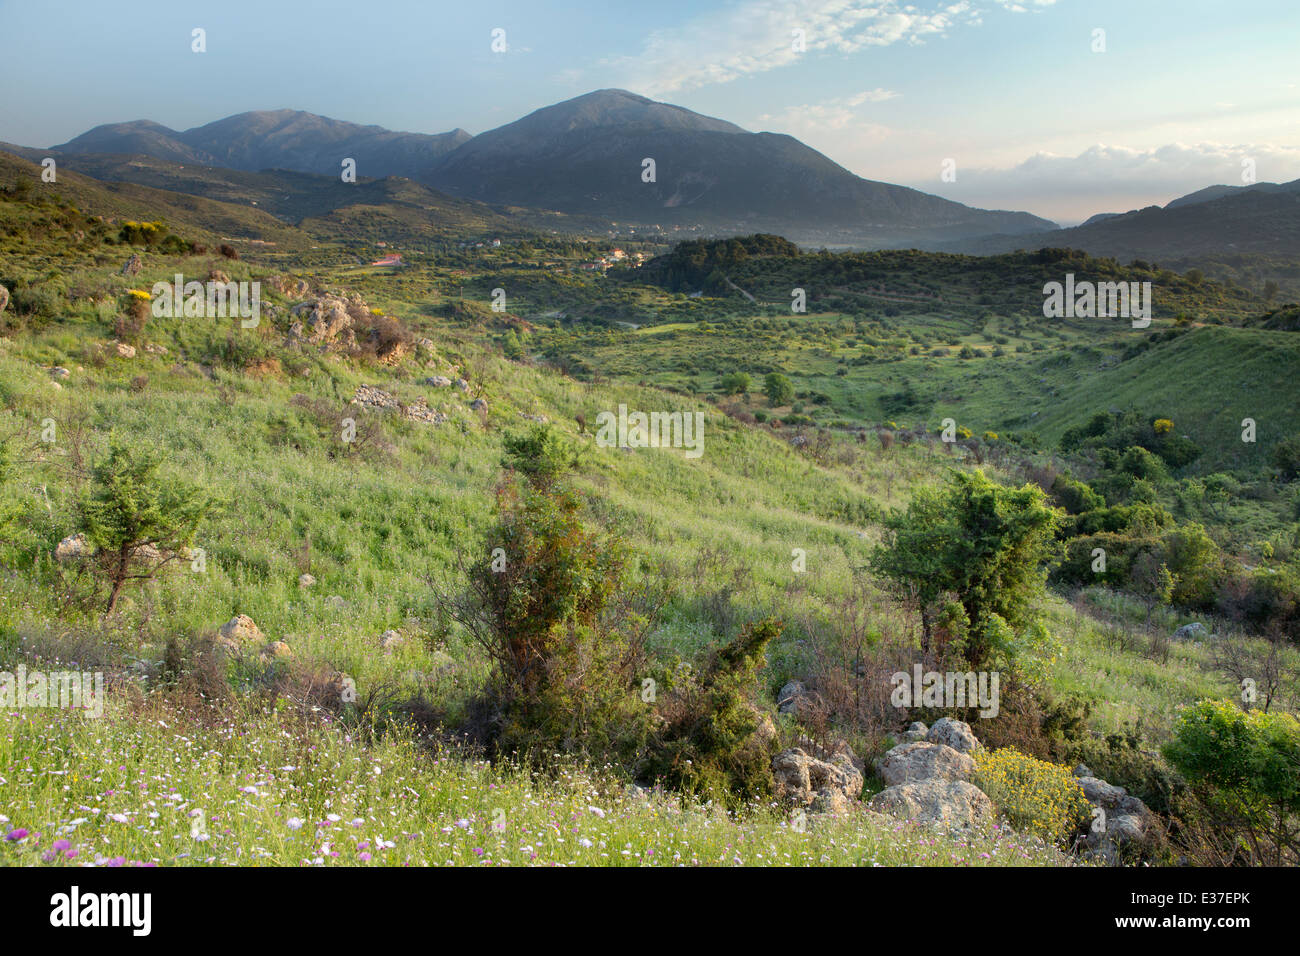 Landscape photograph of the sun rising and casing a warm light over the mountain and village at Agia Eirini, Kefalonia Stock Photo